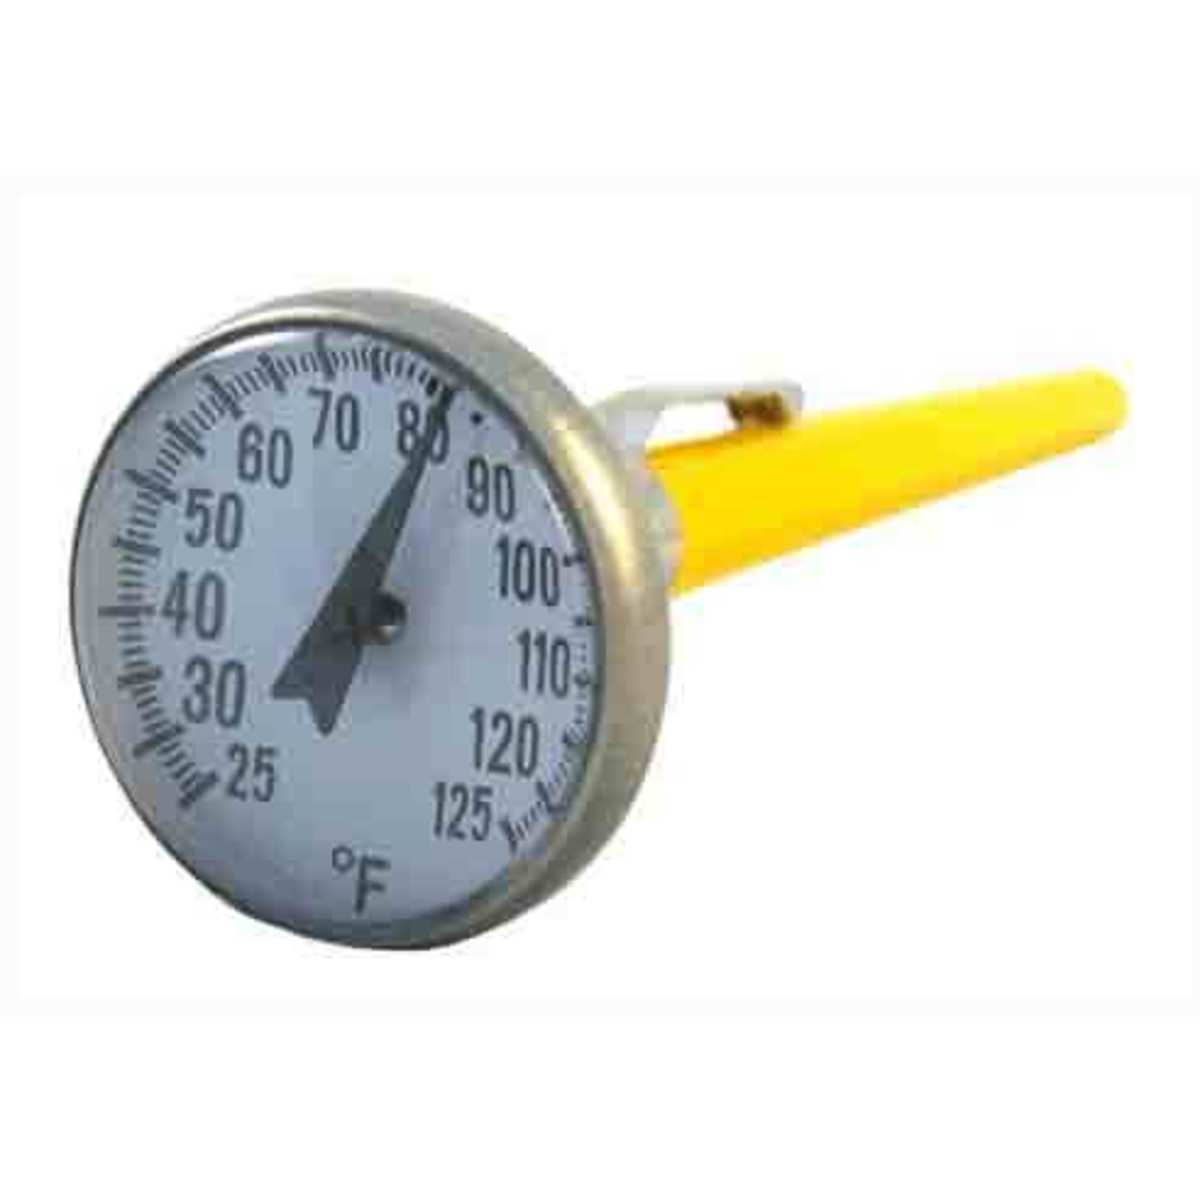 This is a concrete thermometer with a range of 25 to 125 degrees Fahrenheit. Since it contains the acceptable range of 30 to 120 degrees, this thermometer would be able to be used for this test.